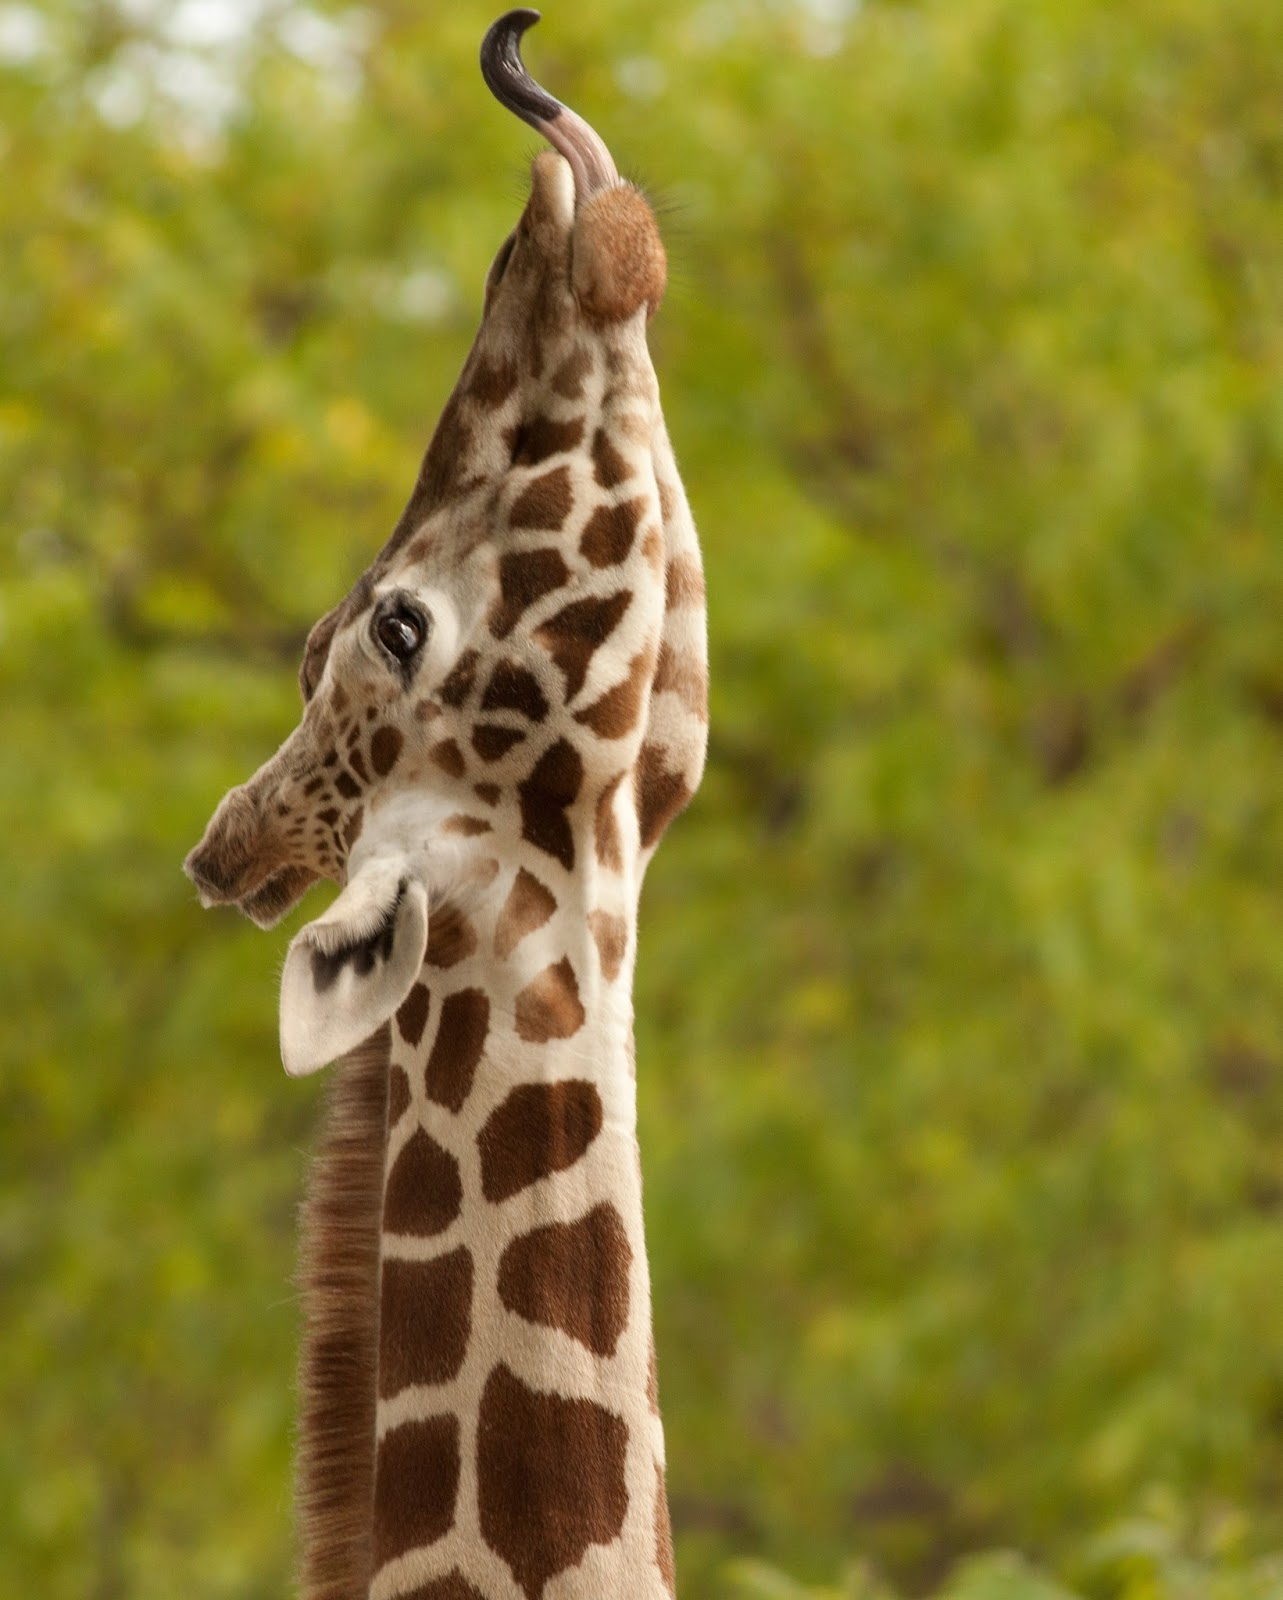 Picture of a giraffe with it's tongue out.